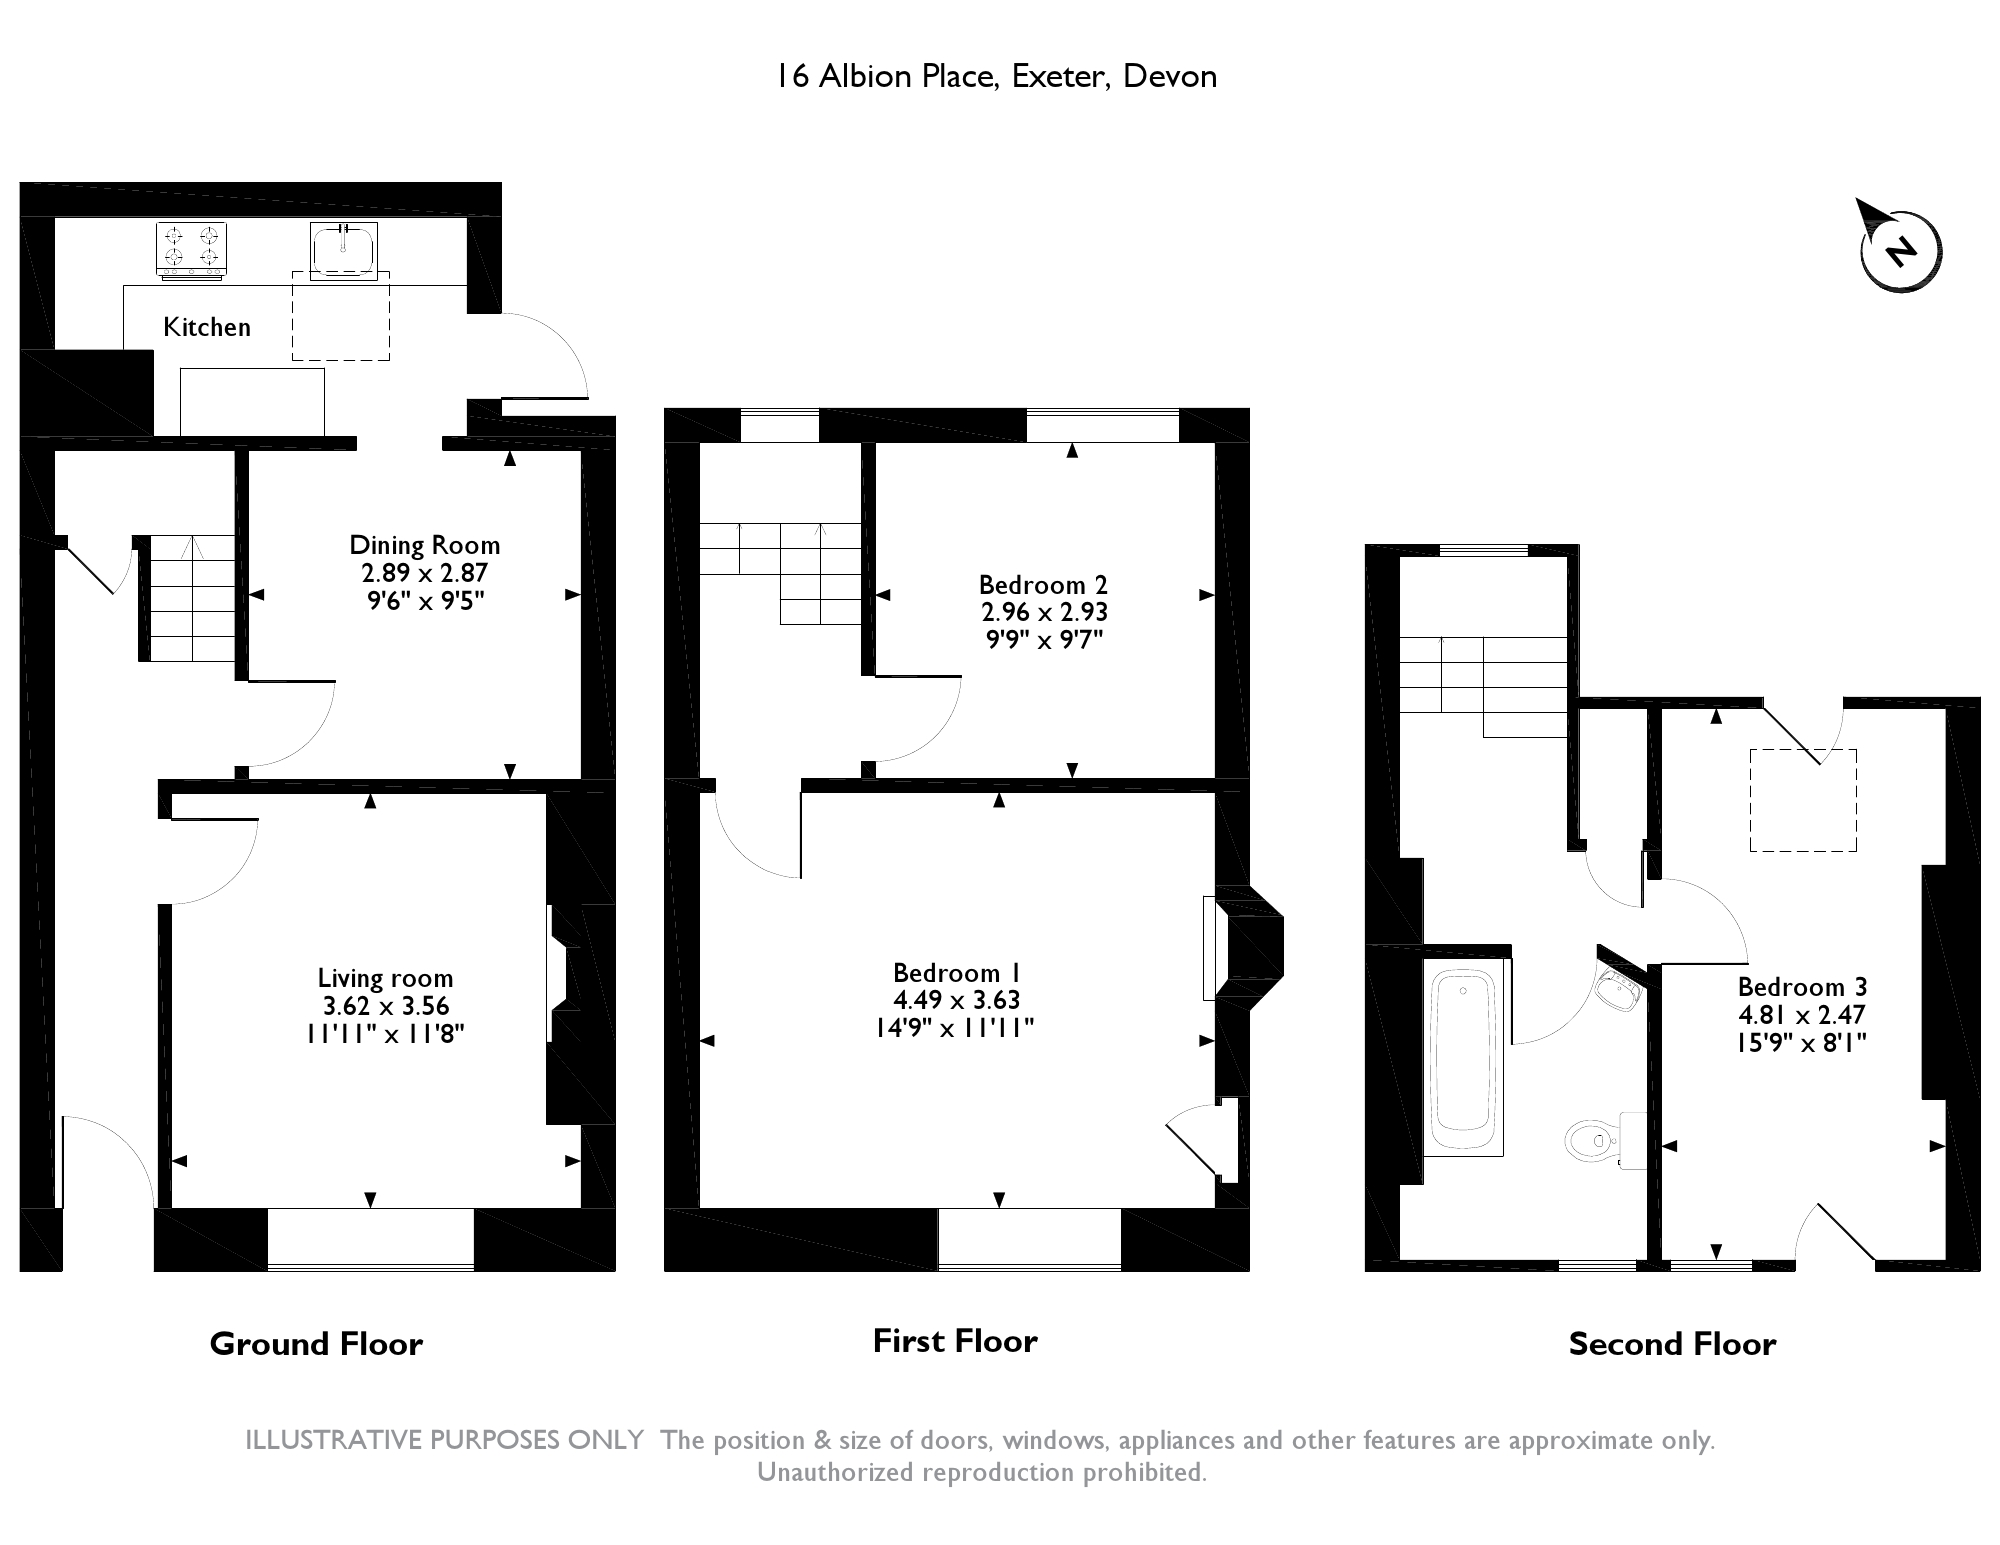 16 Albion Place, Exeter, EX4 6LH floor plan